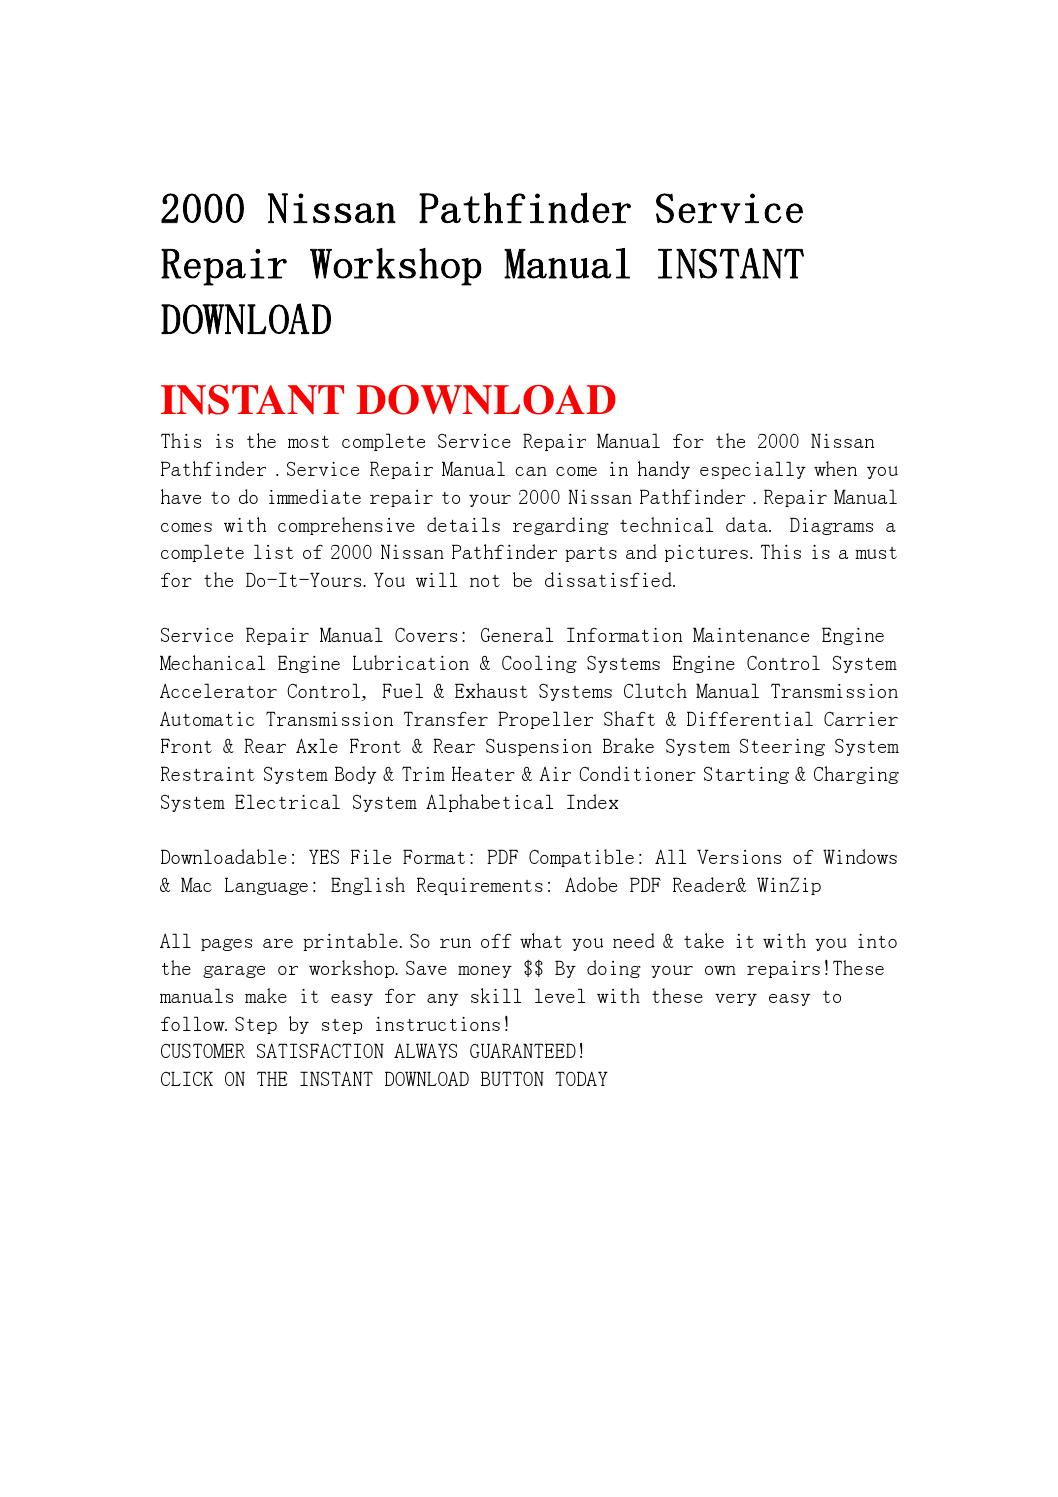 2000 nissan pathfinder service repair workshop manual instant download by  fjhsegfnnse - issuu